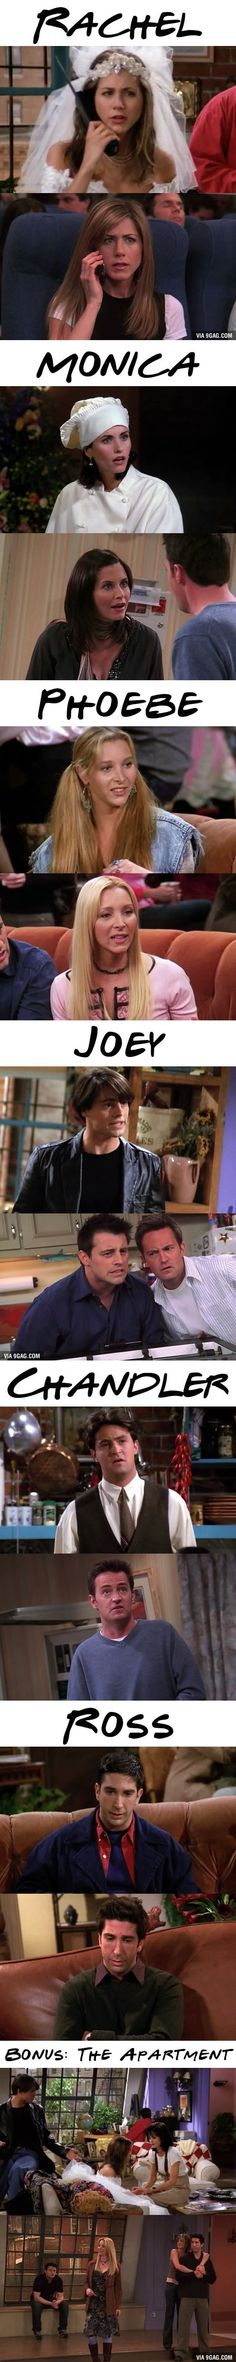 """The Cast Of """"Friends"""" On The First Episode Vs. The Last Episode Friends is the Best Show Ever. Friends made us laugh, it made us cry. It thought all of us so much about friendship and friends. Friends Tv Show, Friends 1994, The Cast Of Friends, Serie Friends, Friends Moments, I Love My Friends, Friends Forever, Funny Friends, Friends Season 1"""